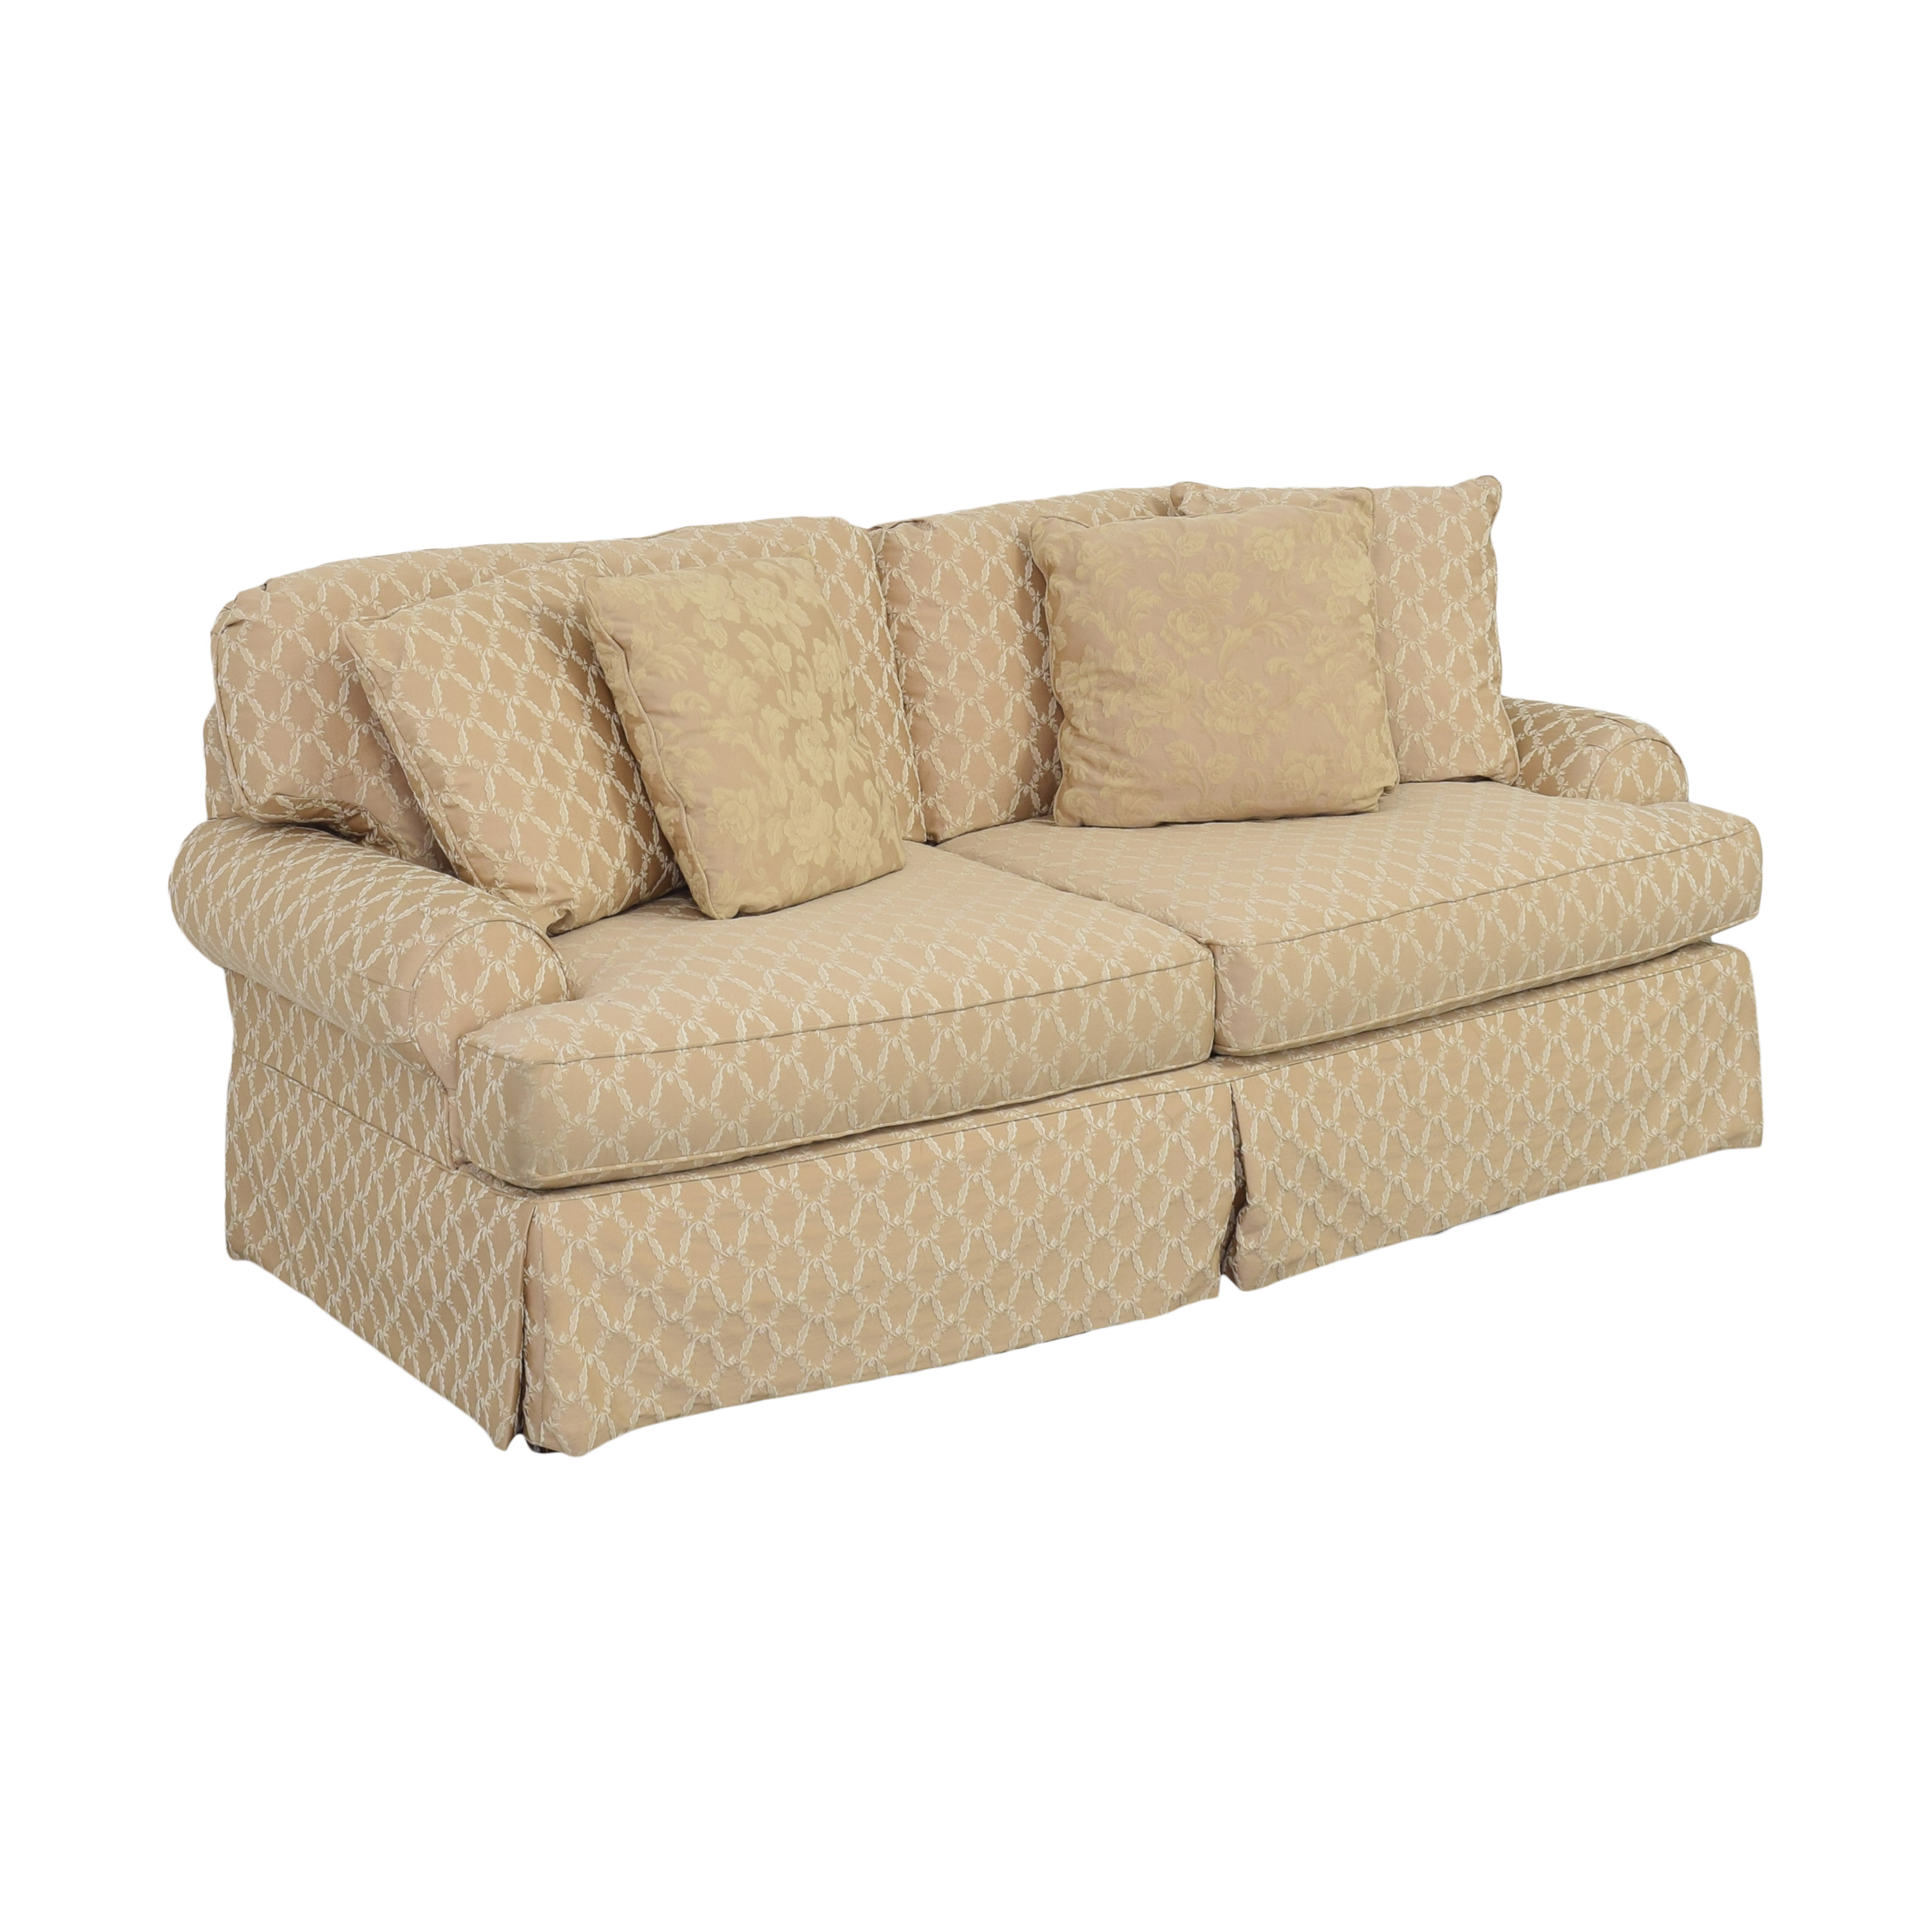 Domain Domain Skirted Sofa for sale